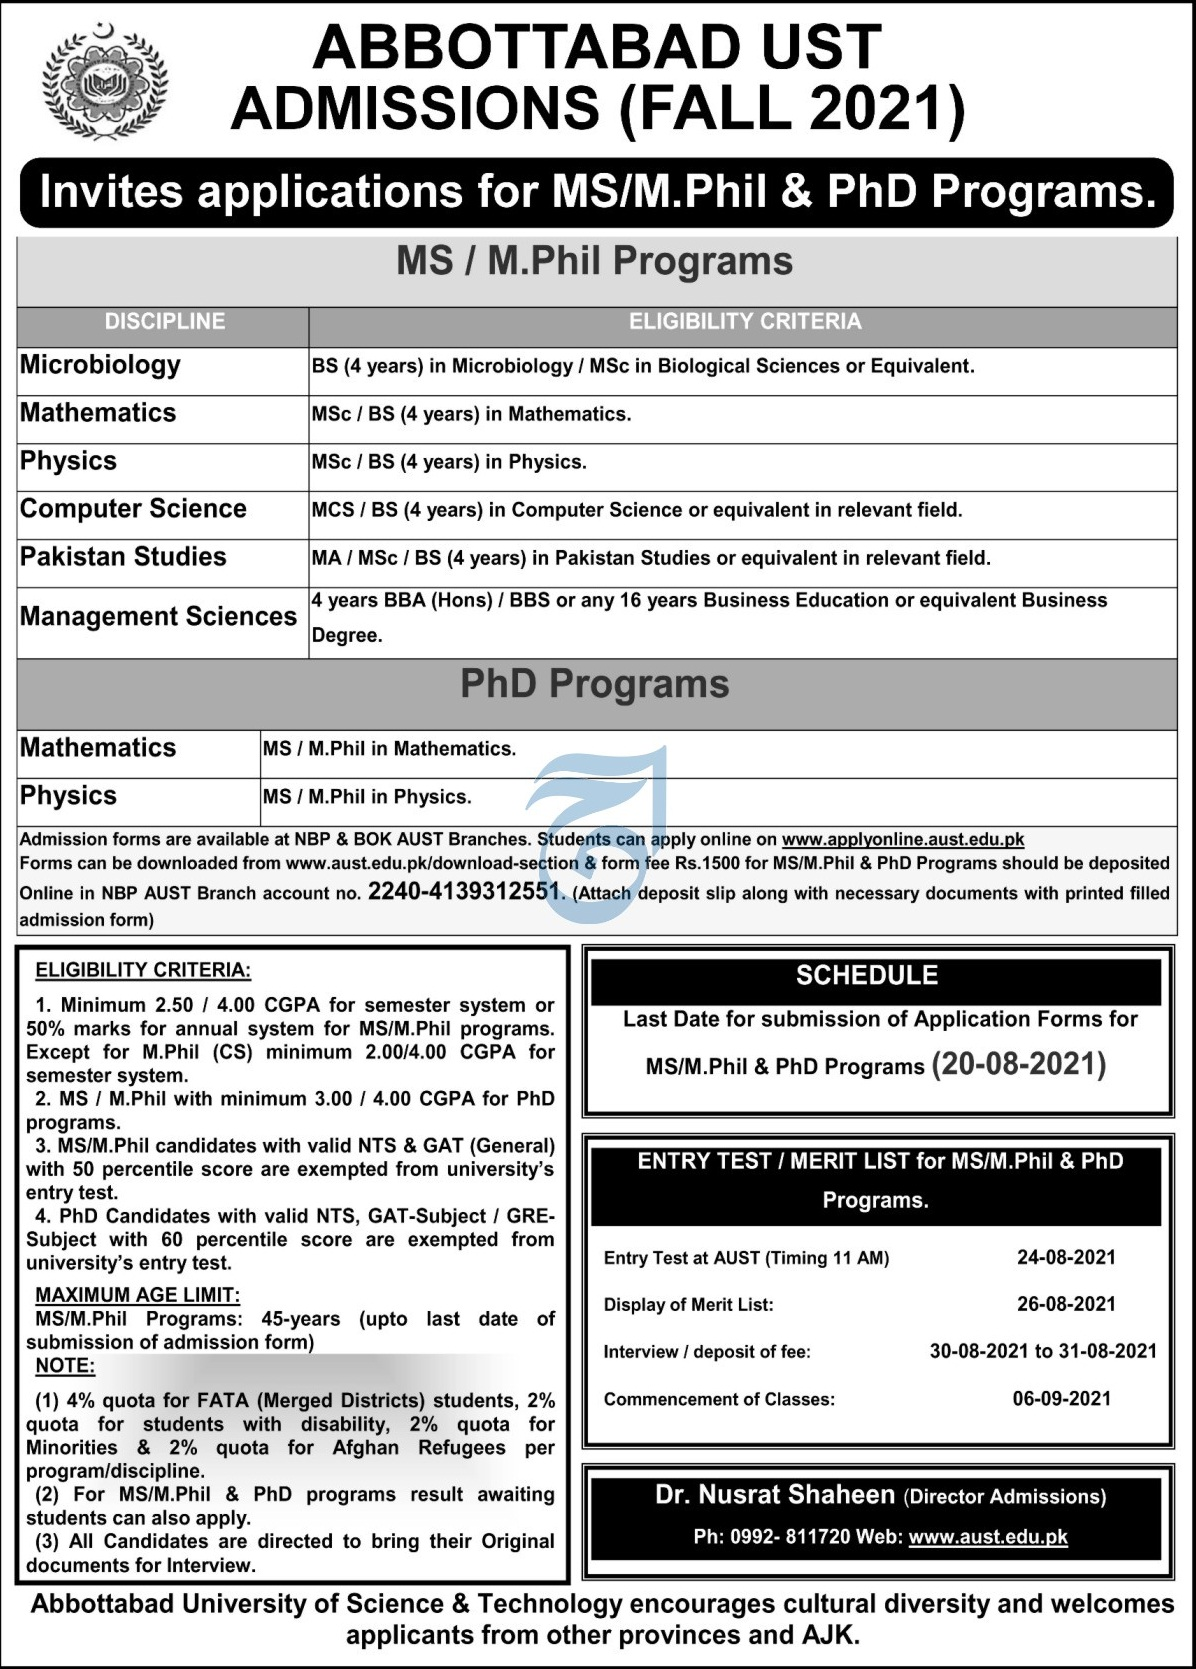 Abbottabad University Of Science & Technology Abbottabad Admissions